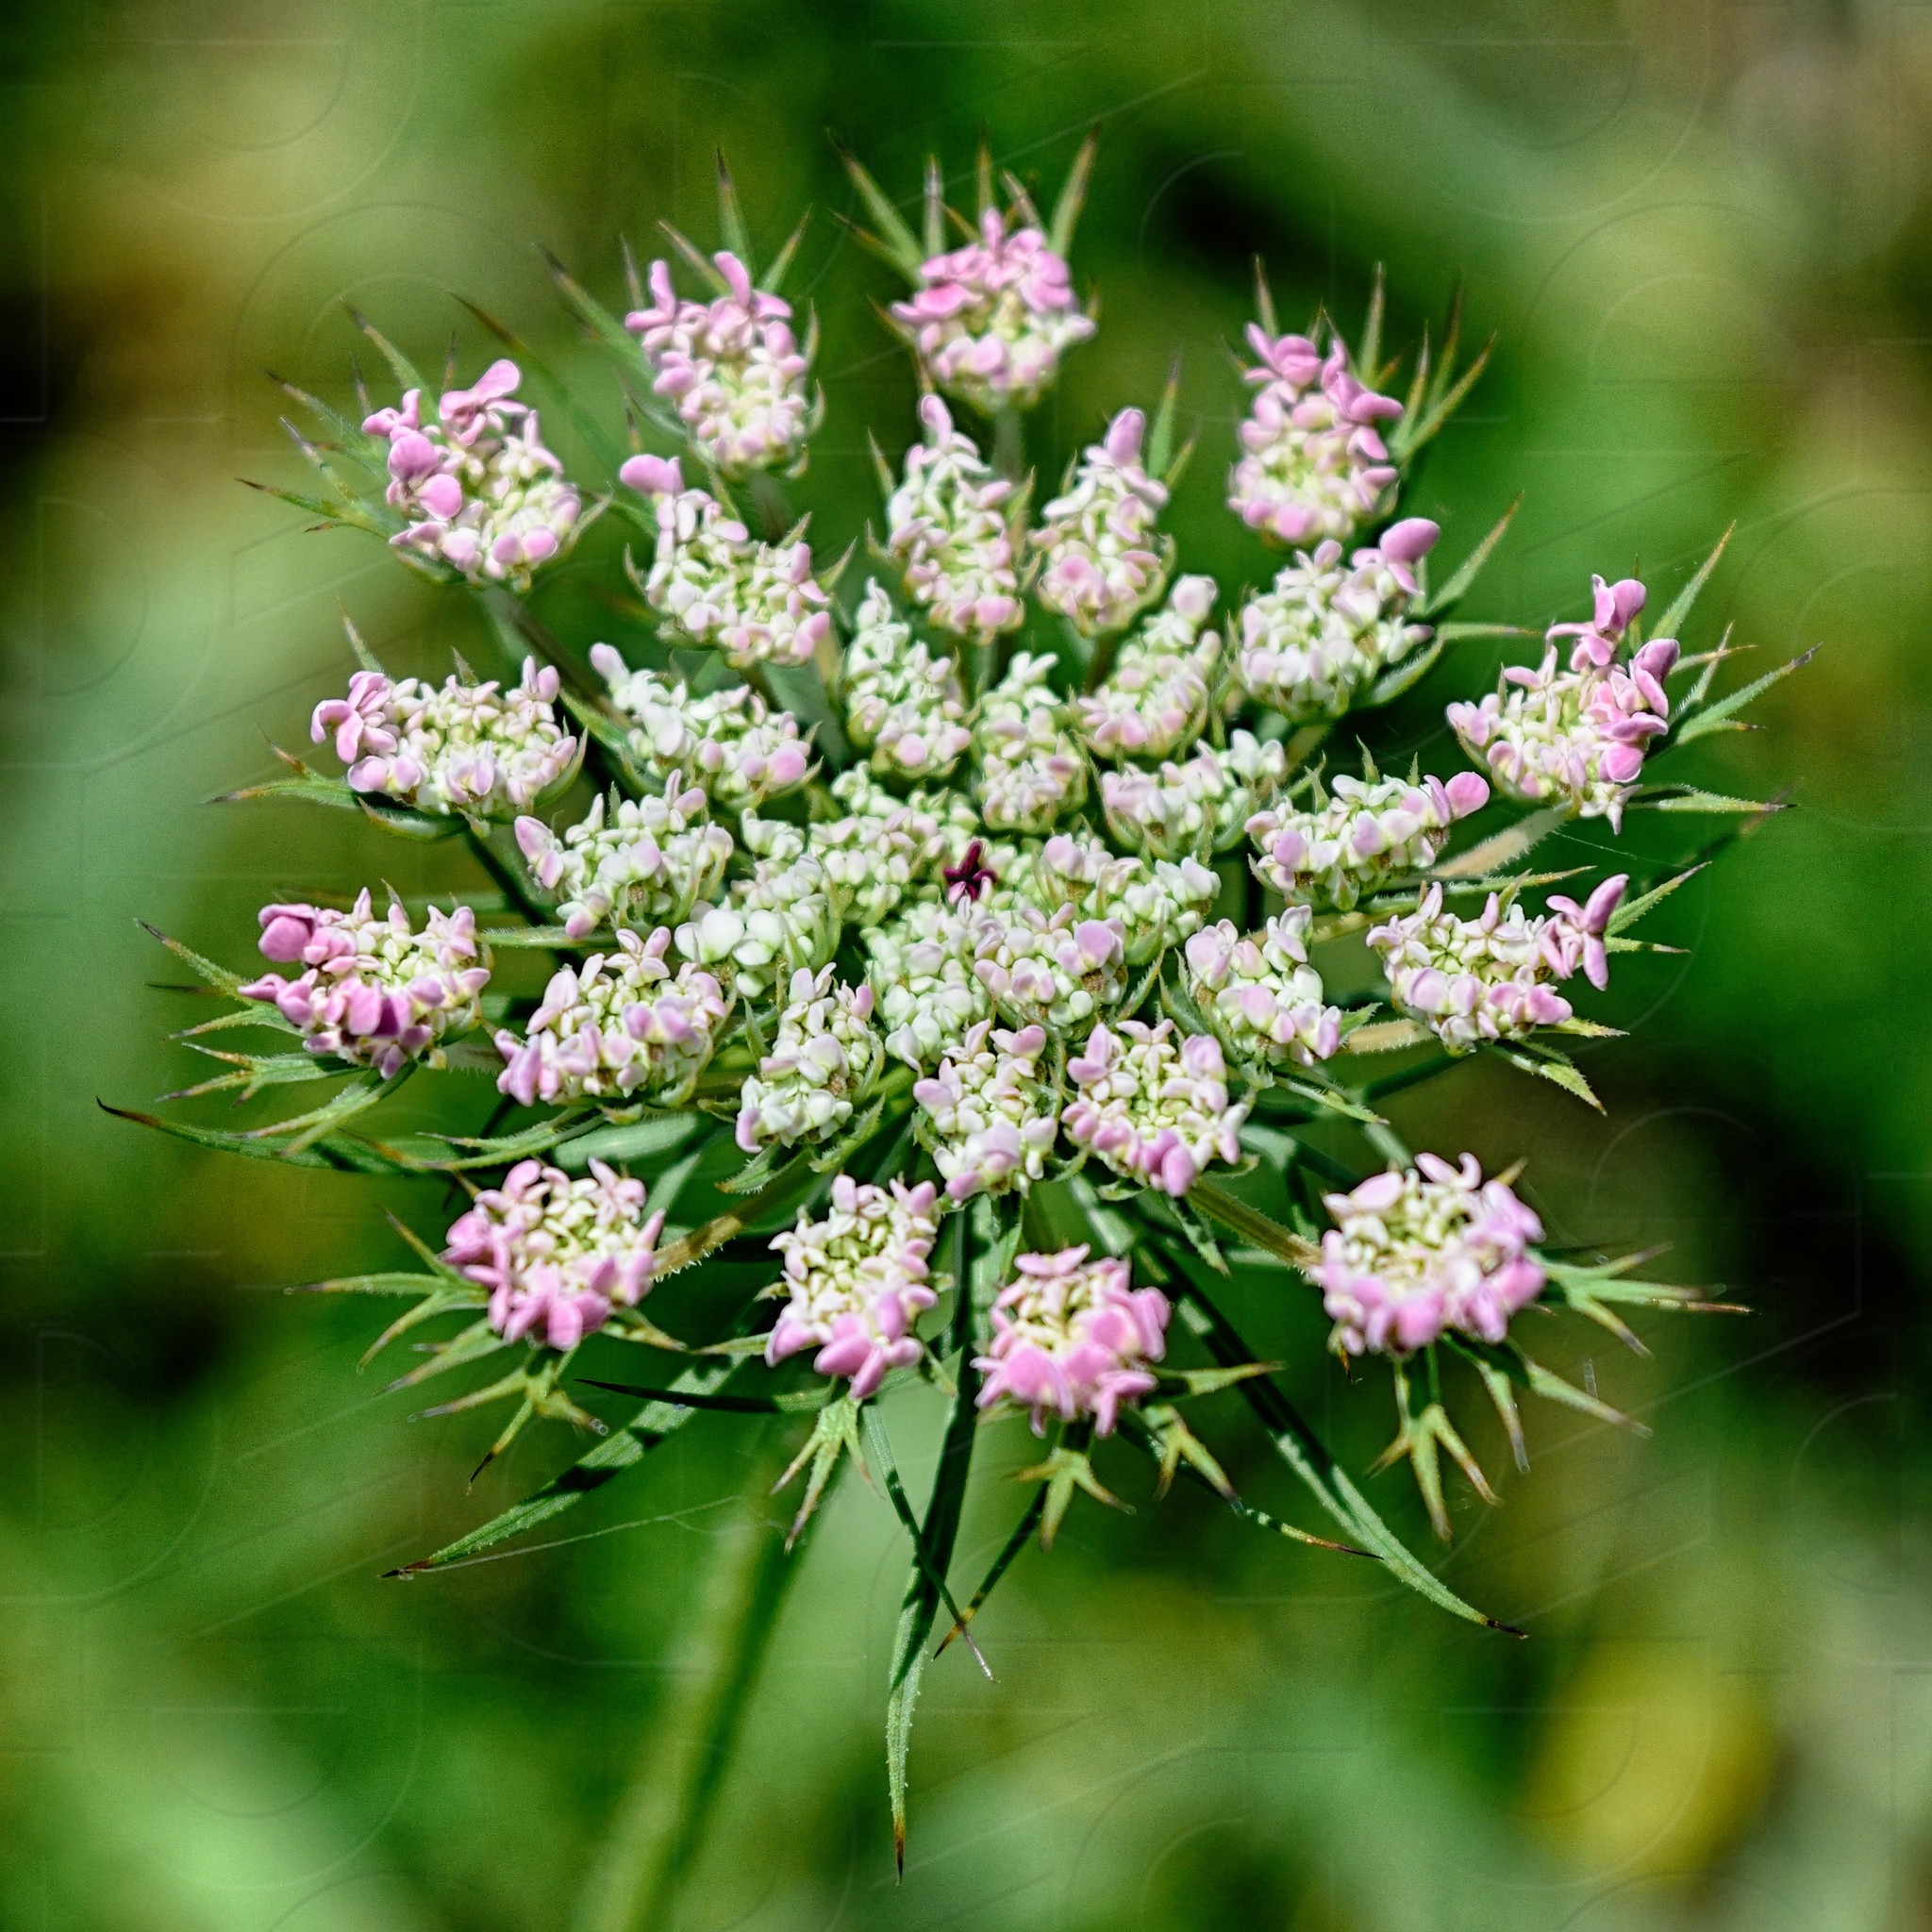 Pink Queen Anns Lace